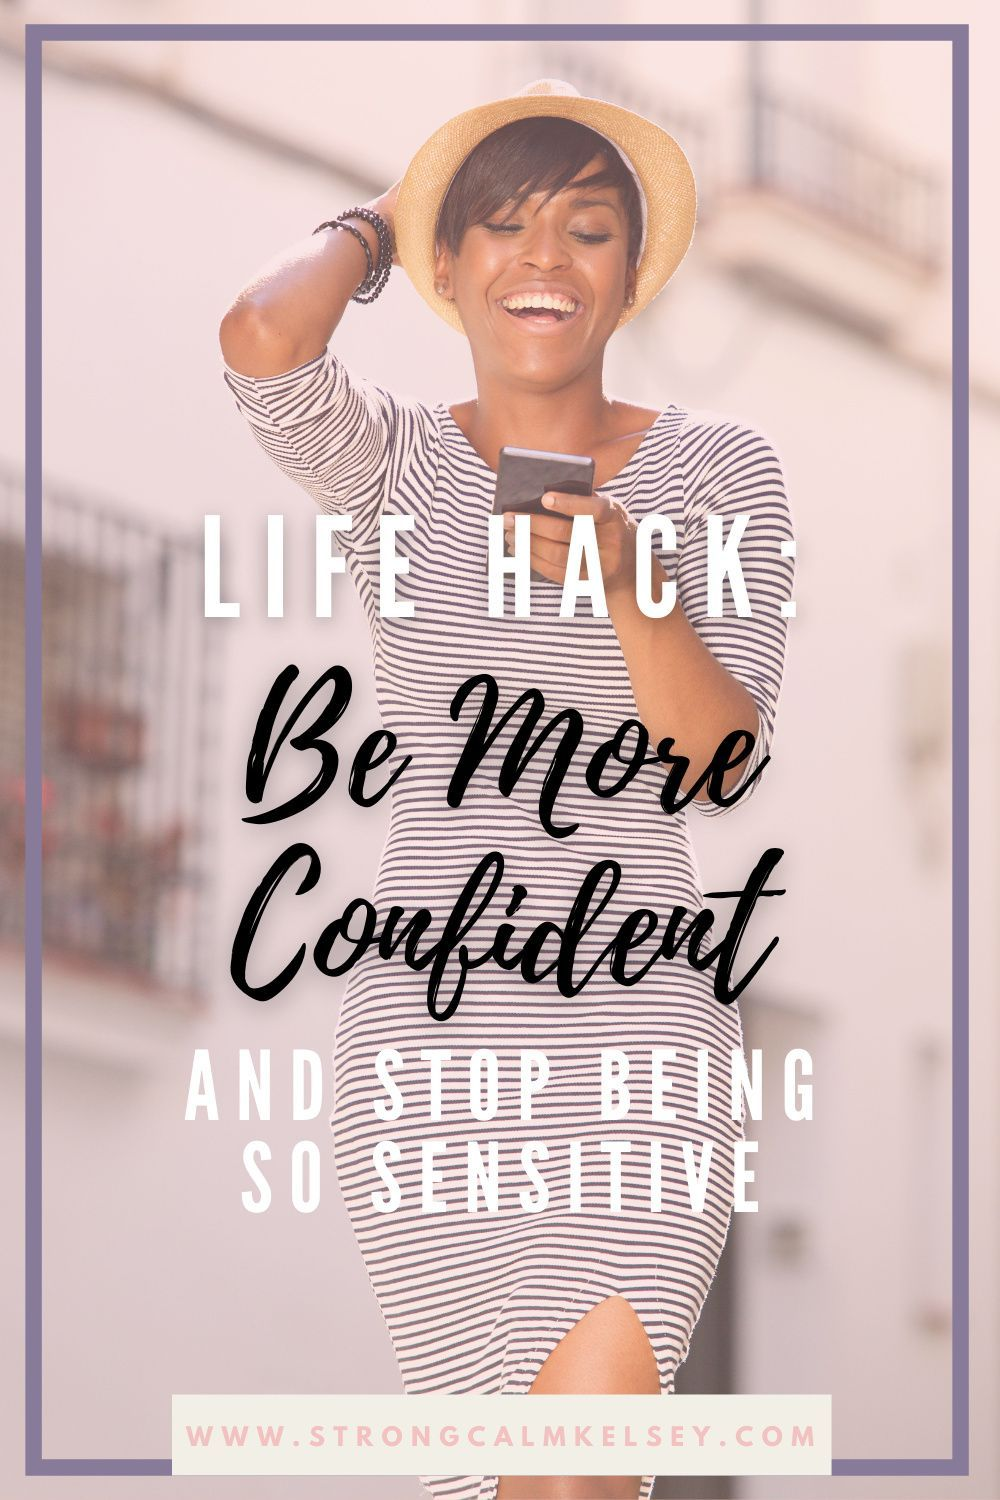 Build your confidence and be less sensitive dealing with